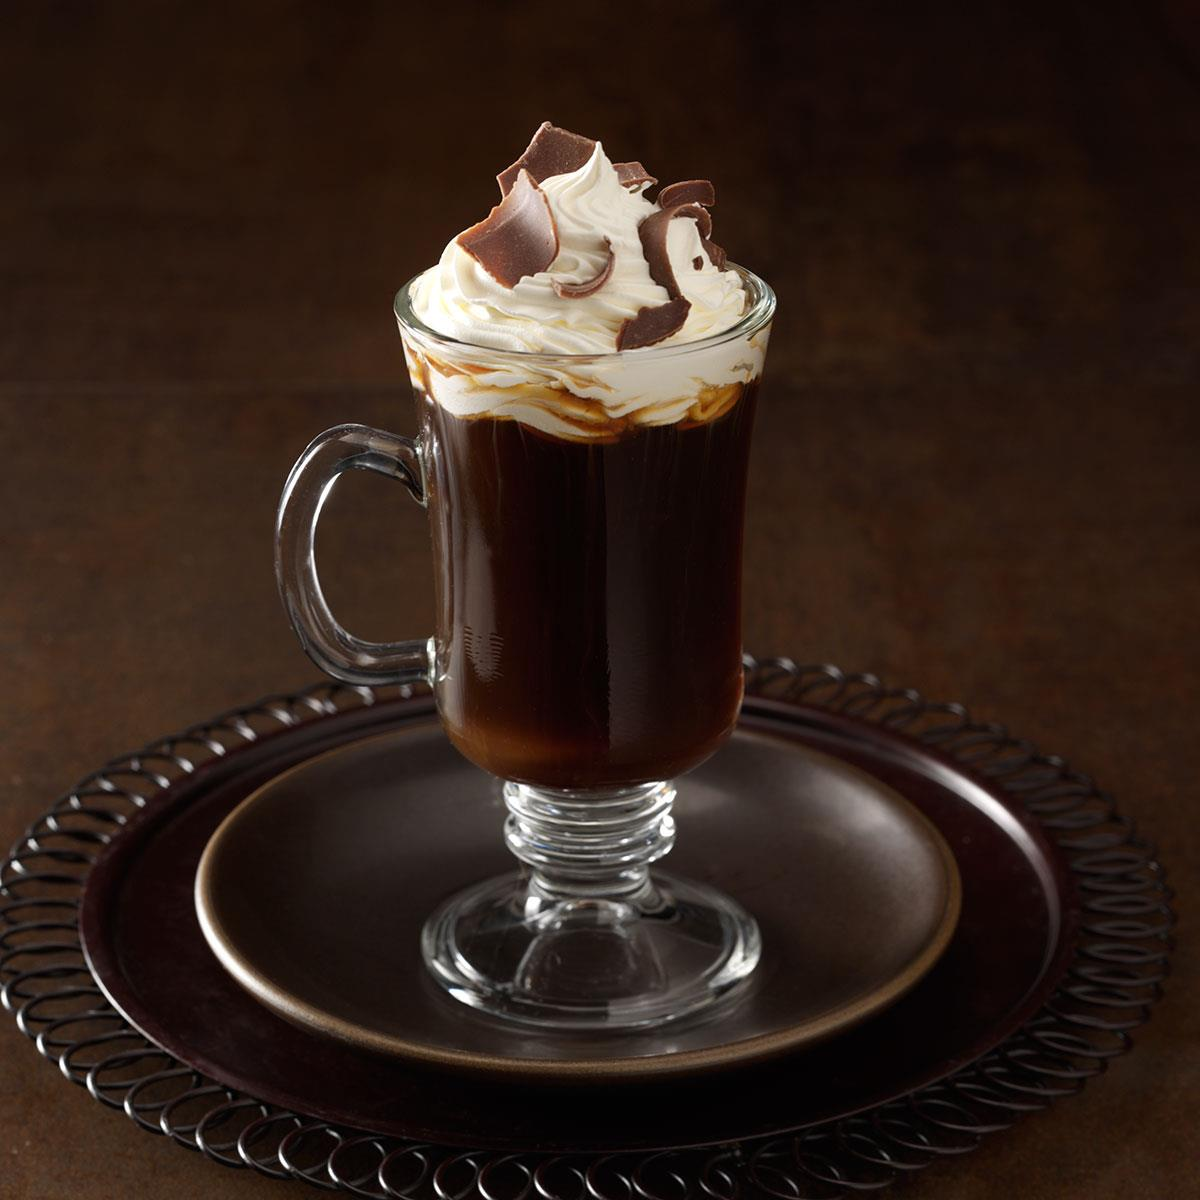 Spanish Coffee Recipe Taste Of Home